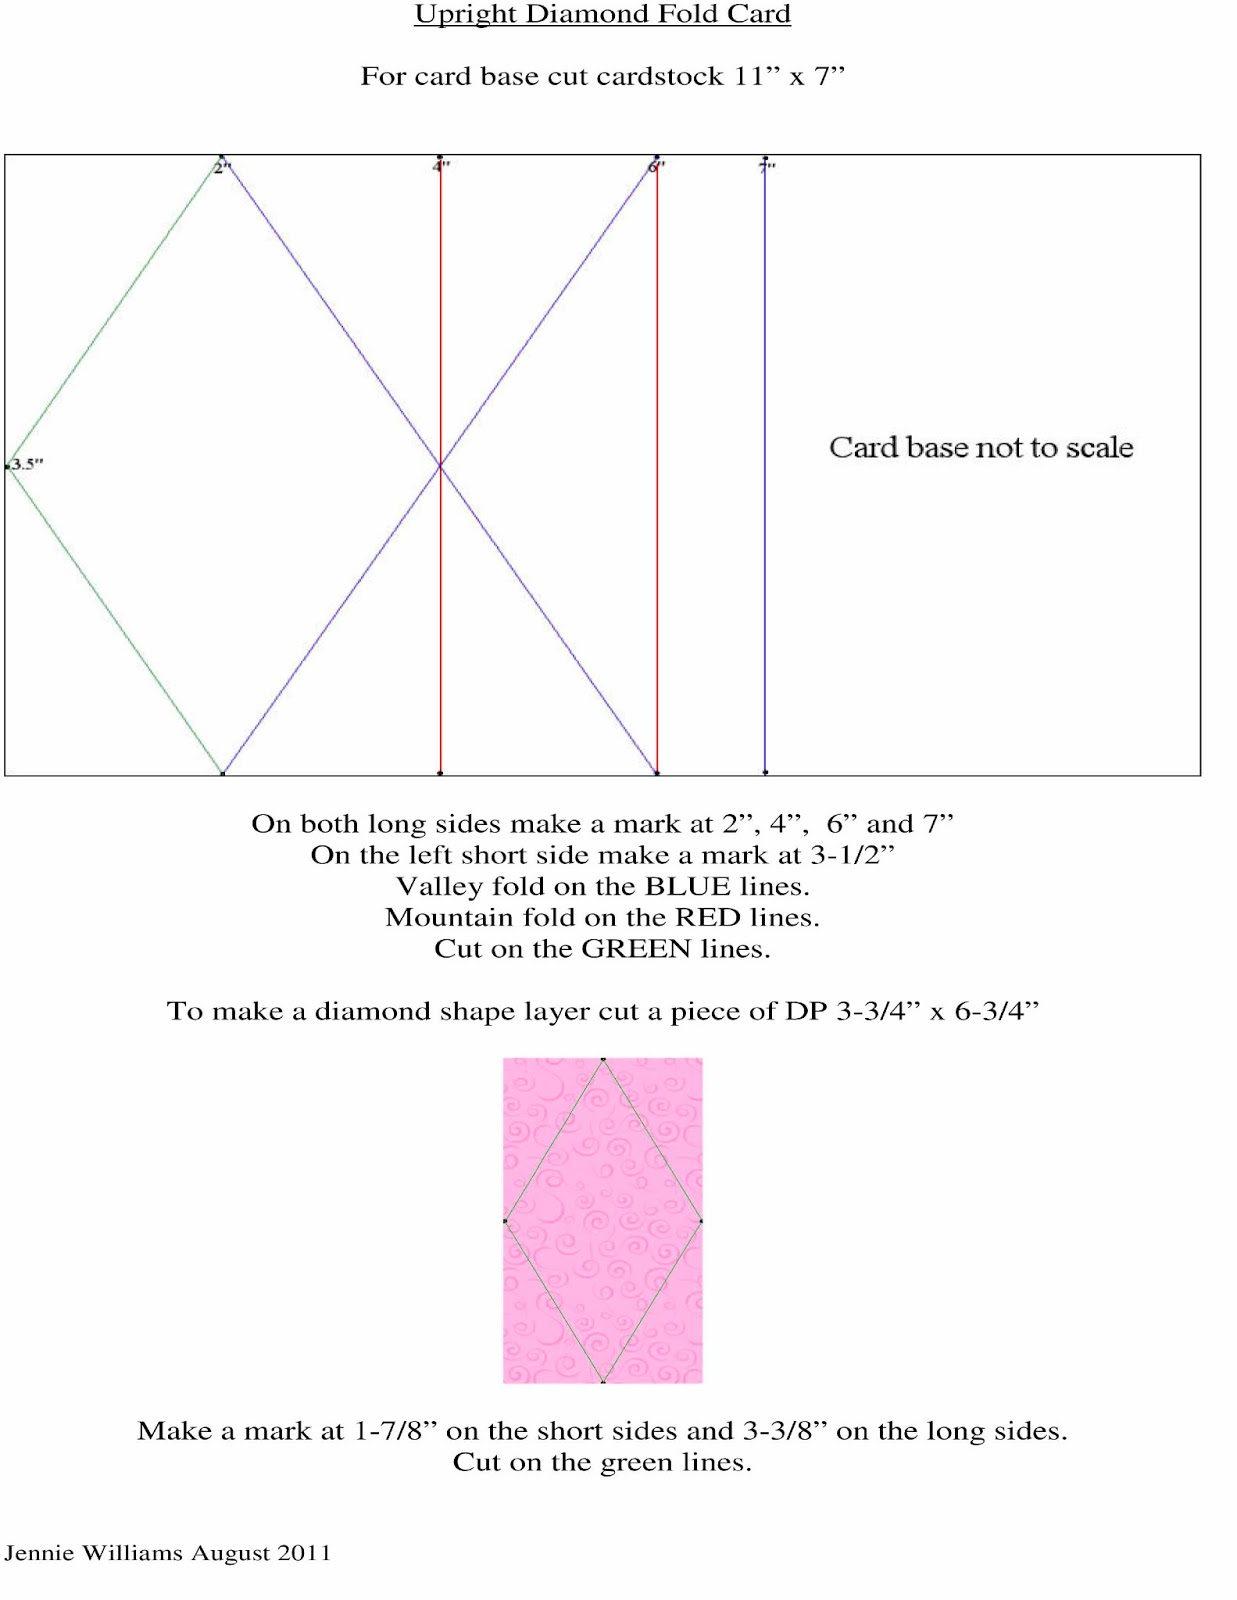 Cool 10 Envelope Template Indesign Thick 10 Steps To Creating An Effective Resume Flat 100 Bill Template 100 Free Resume Youthful 10x13 Envelope Template Bright12 Tab Divider Template An Elegant Touch...: \u0027New Every Morning\u2026 Thinking Of You\u0027 Upright ..